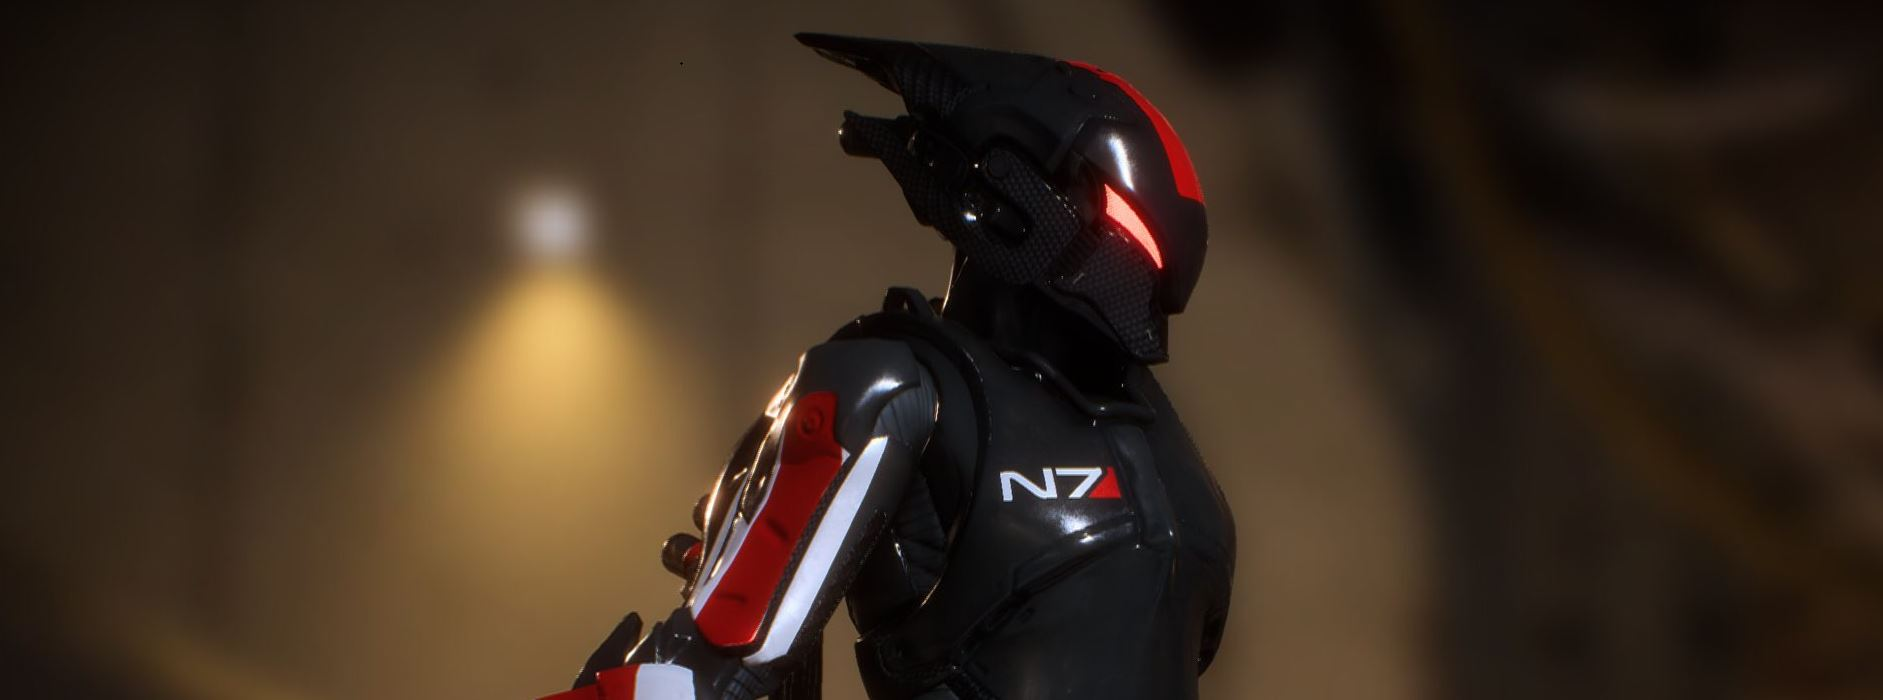 Anthem-Interceptor-Skin-N7